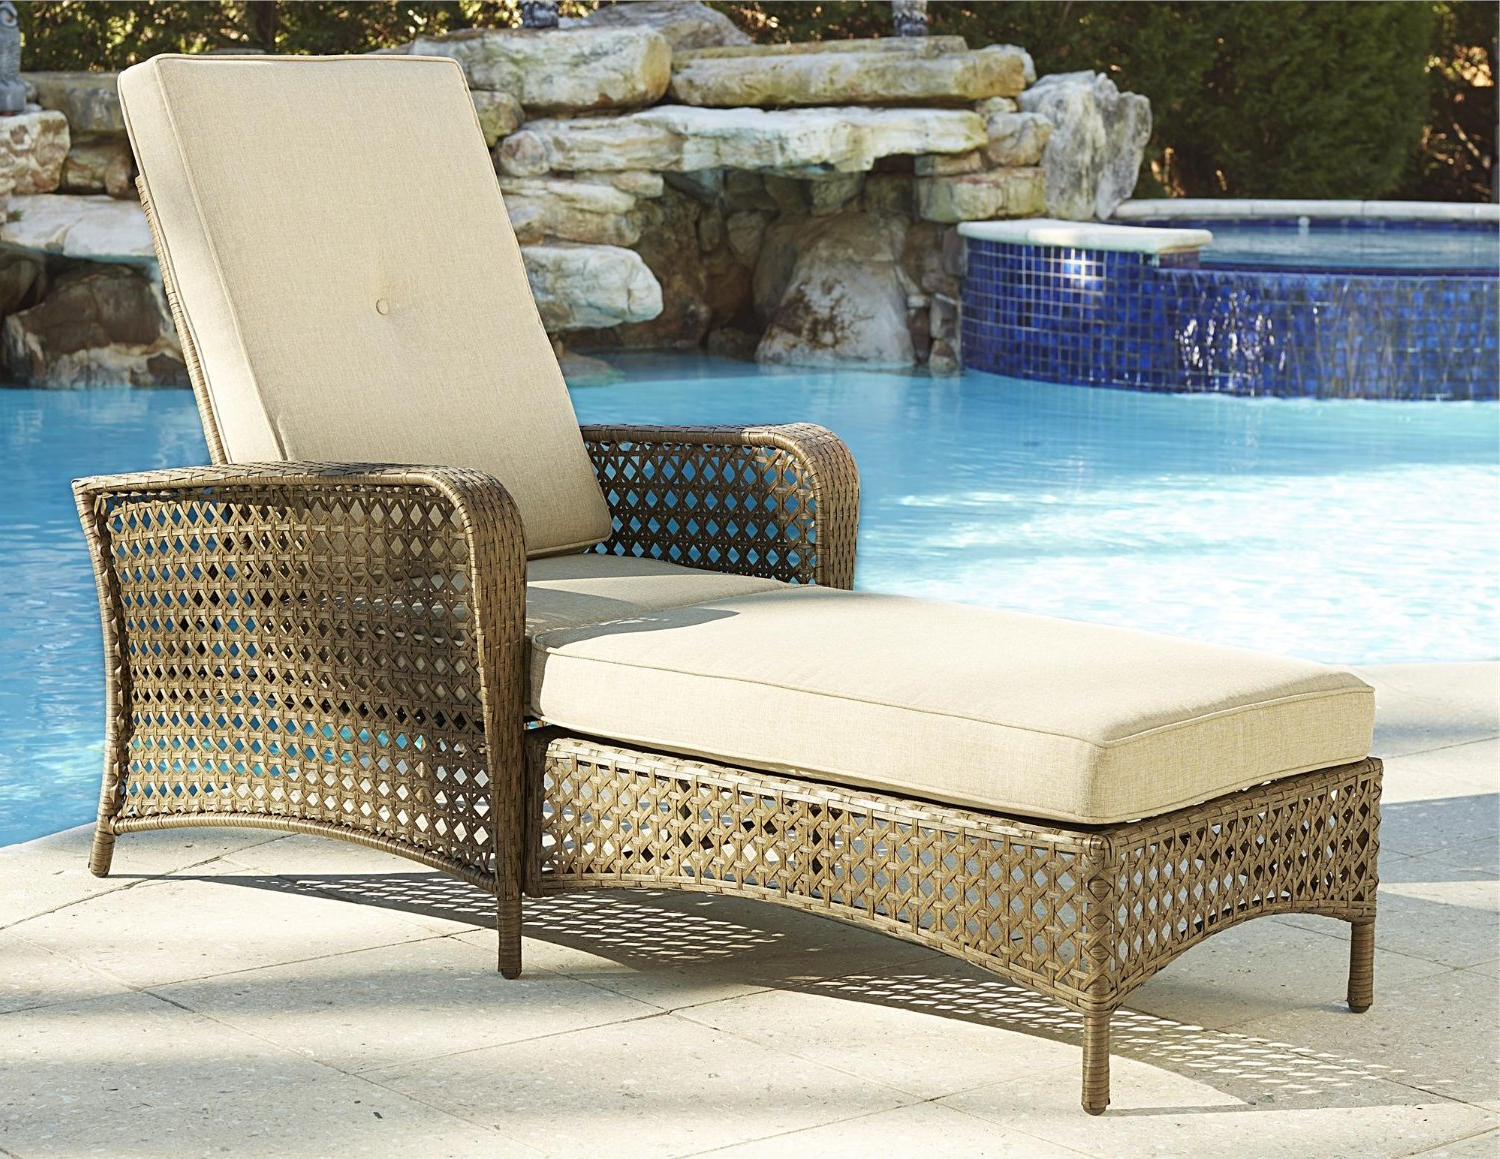 Trendy Buy Cosco Outdoor Chaise Lounge, Adjustable, Amber Wicker Pertaining To Cosco Outdoor Aluminum Chaise Lounge Chairs (View 9 of 25)